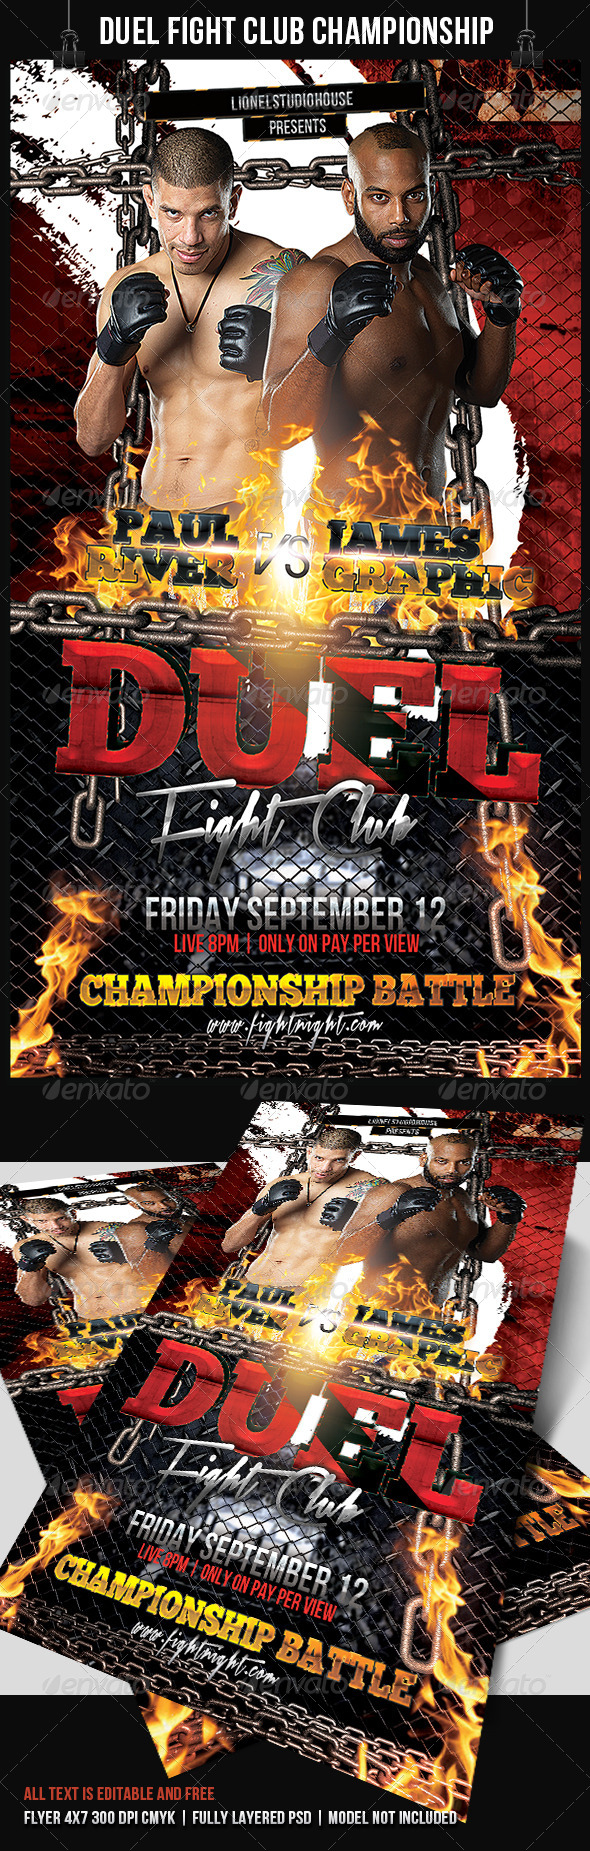 GraphicRiver Duel Fight Club Championship Battle 7677746